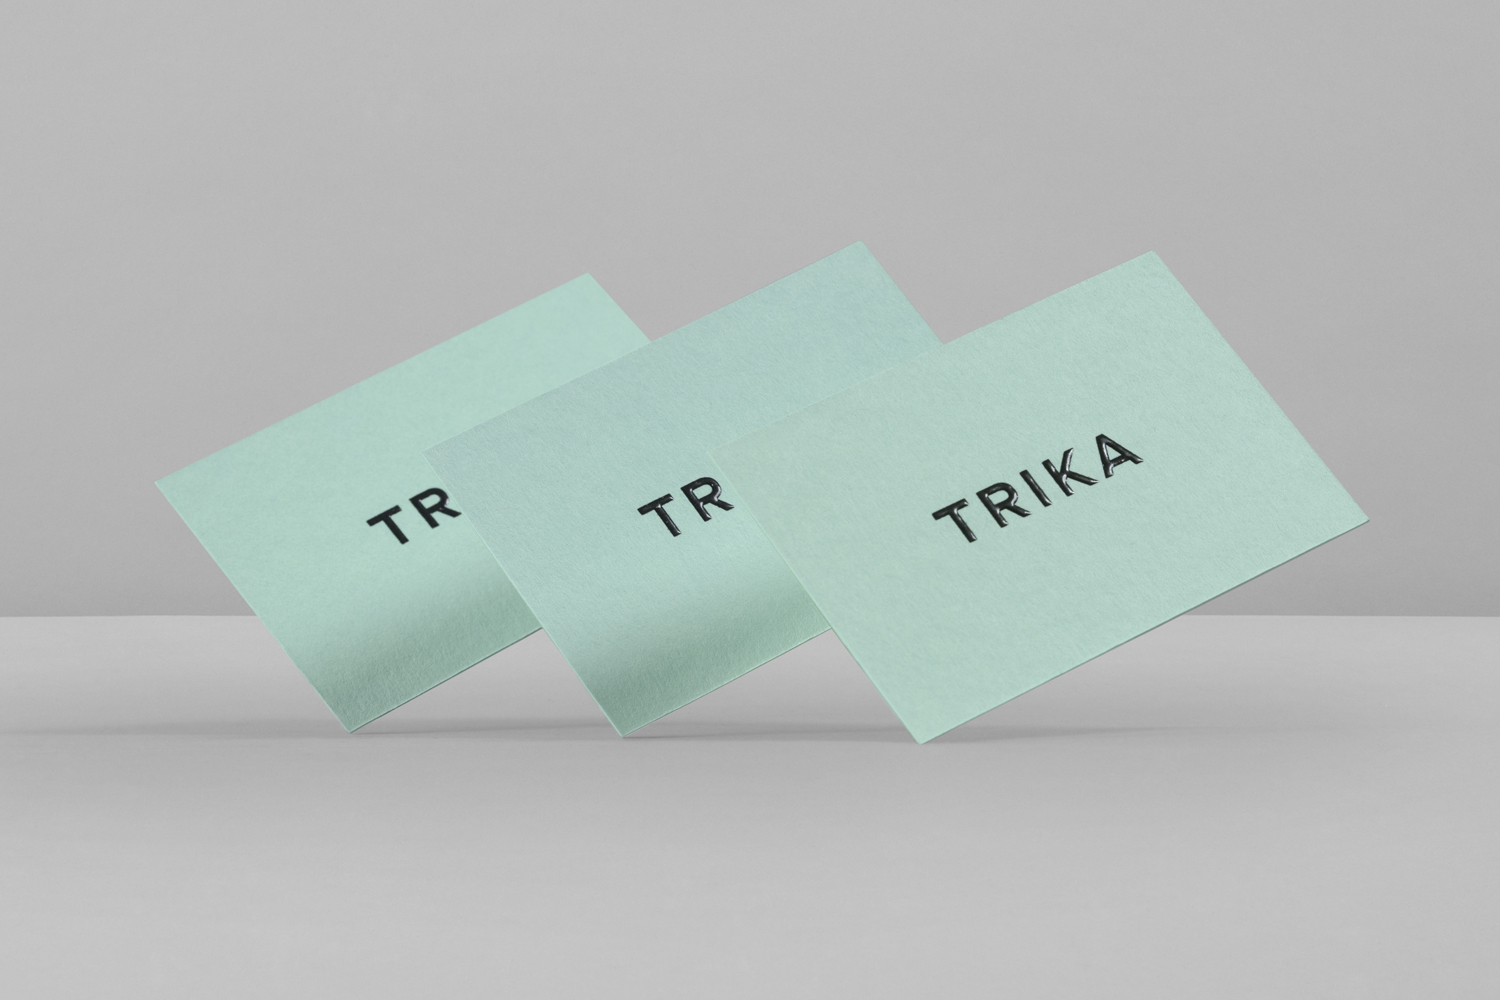 The Best Creative Business Cards 2017 – Trika by Bunch, United Kingdom